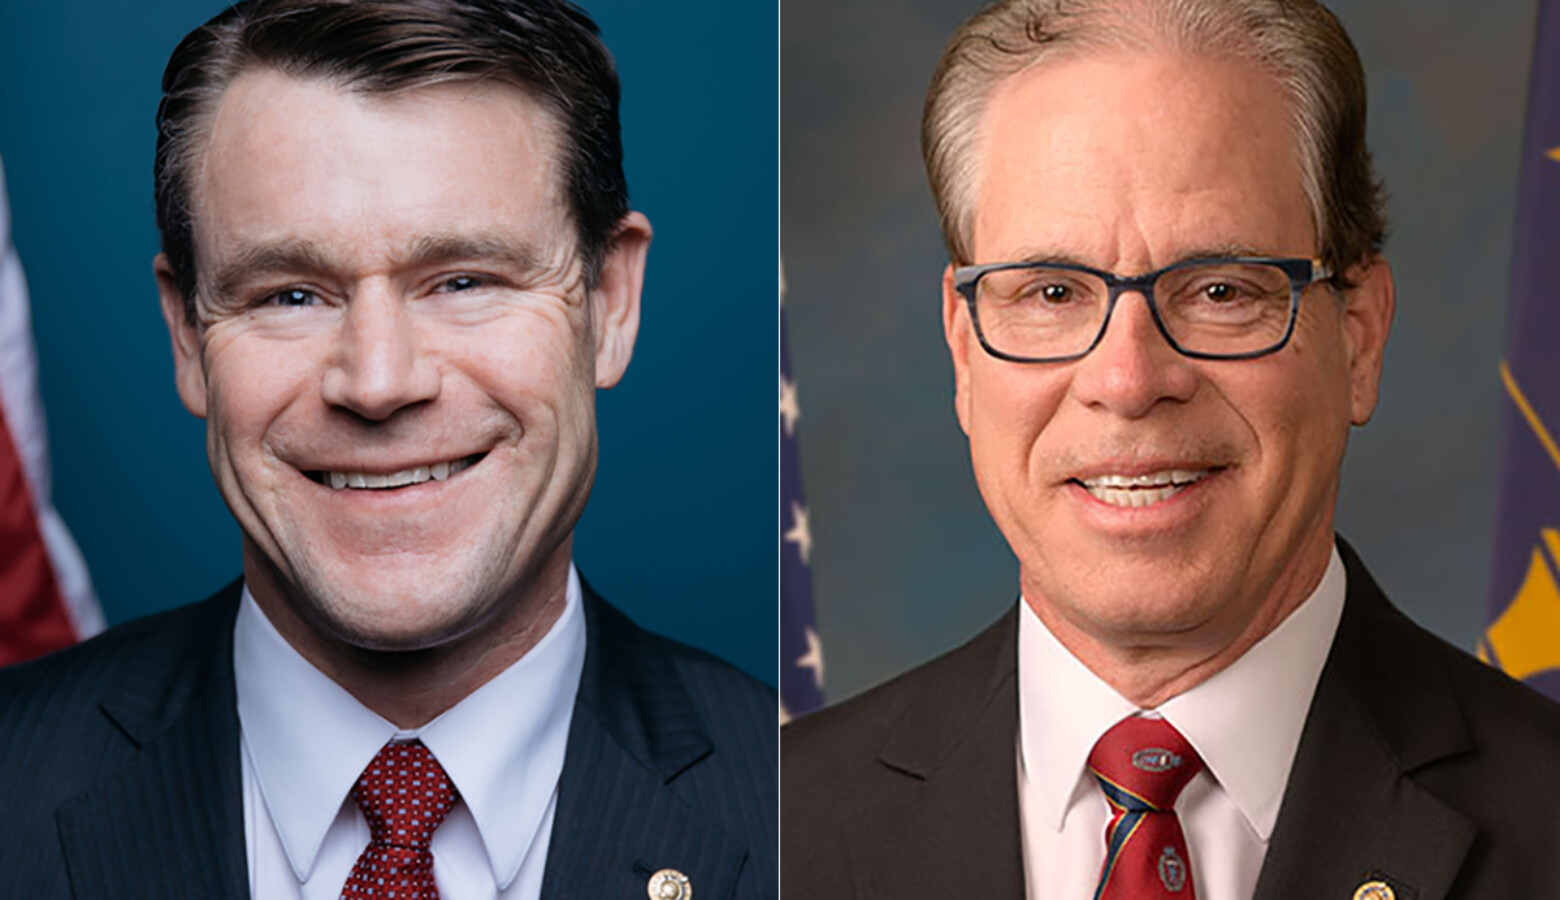 U.S. Sens. Todd Young (R-Ind.), left, and Mike Braun (R-Ind.), right, both want the Senate to approve President Trump's Supreme Court nominee before the Nov. 3 election. (Courtesy of Young and Braun's offices)